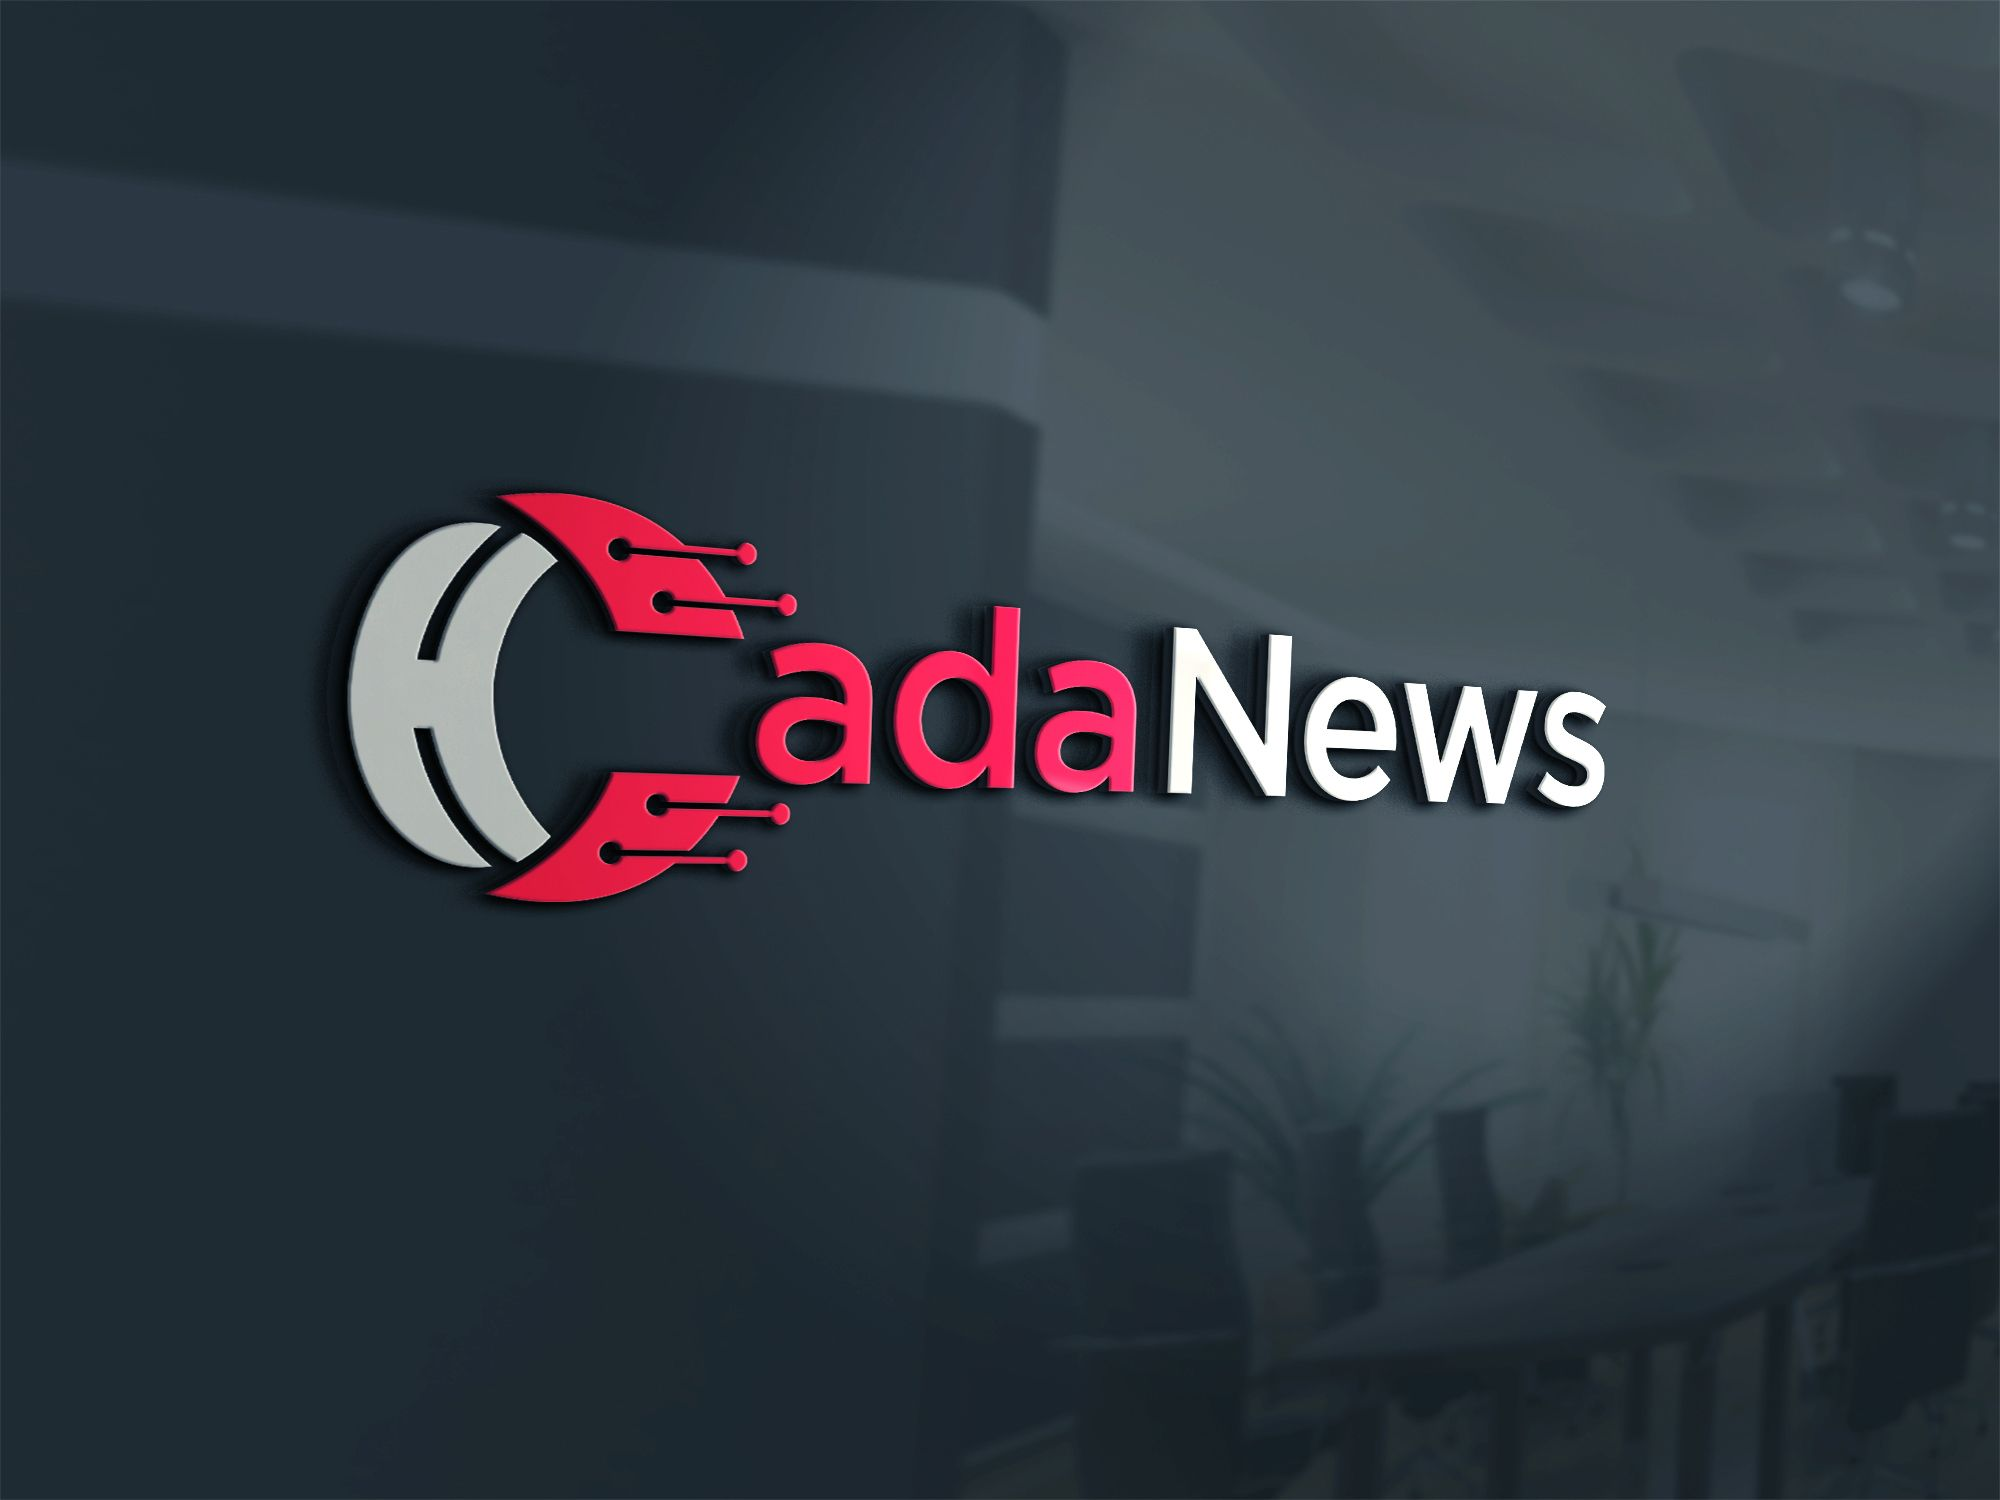 what can you do with ada cryptocurrency